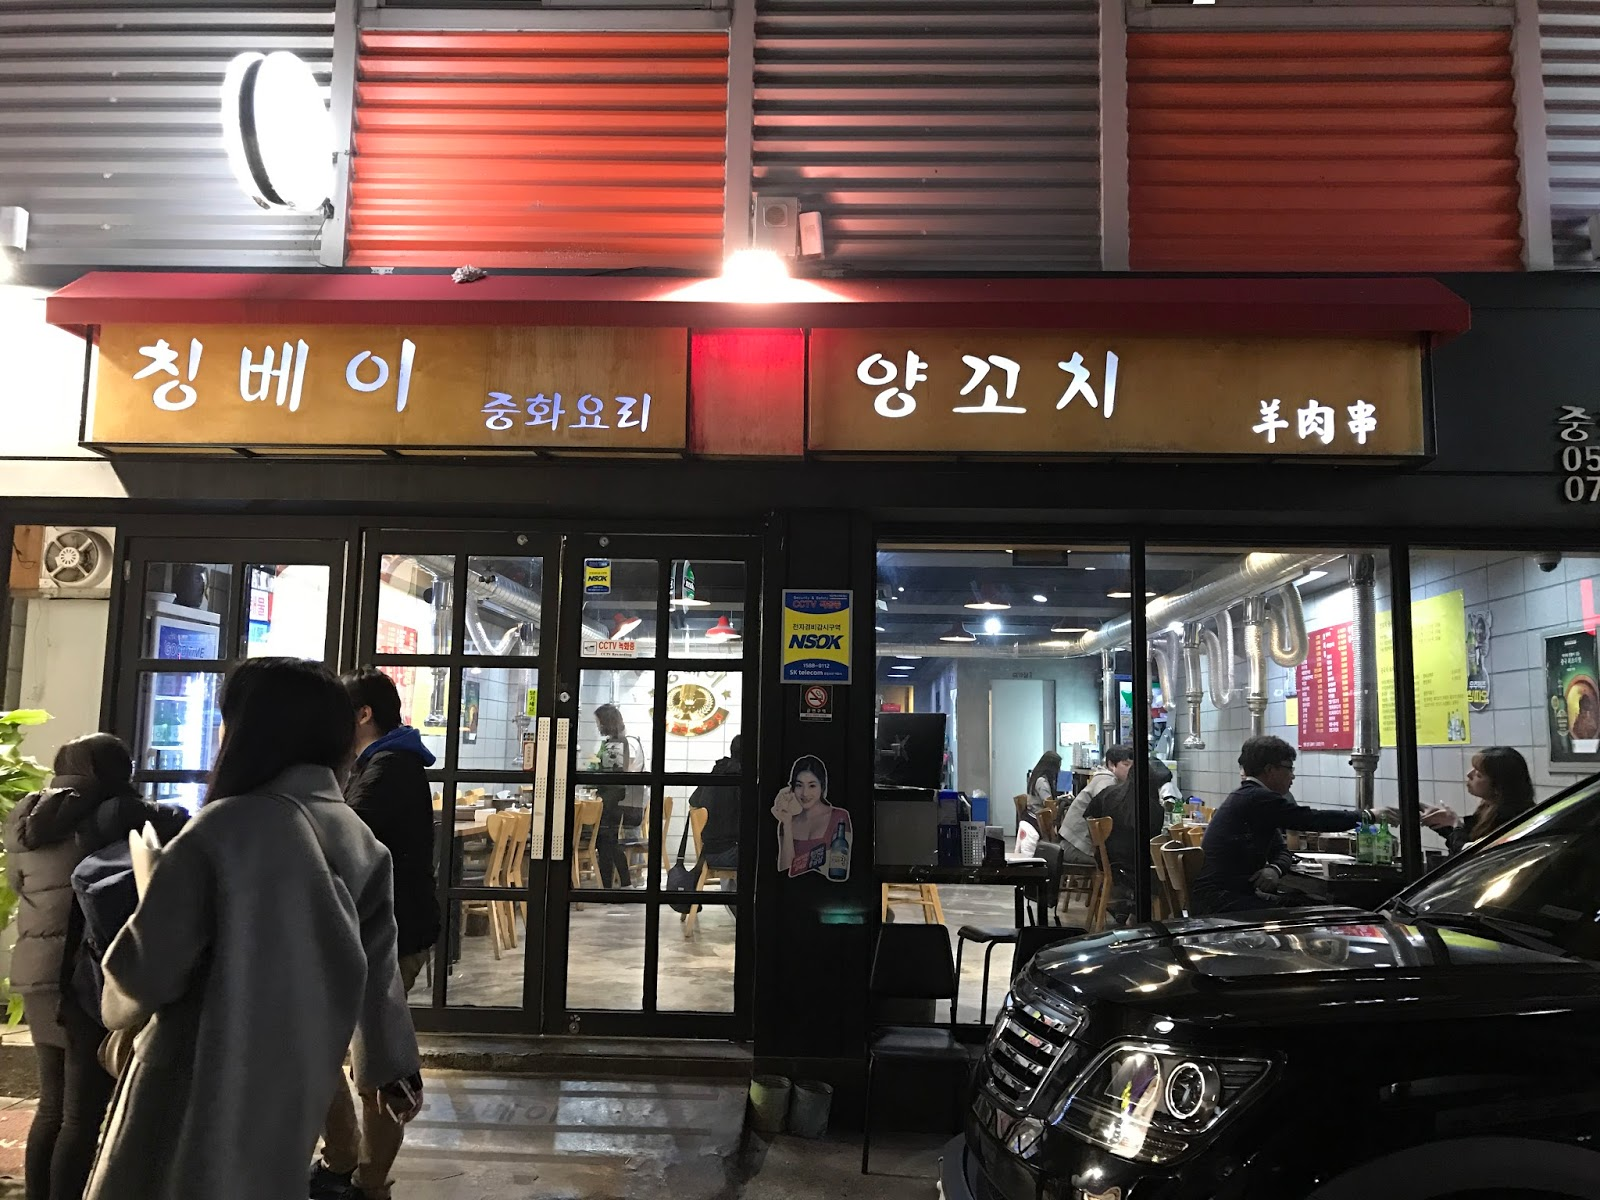 The Name Of Restaurant Was Ching Bae Ii 칭베이 Even On Signboard You Can See Lamb Skewers 양꼬치 As A Main Item For Which Is